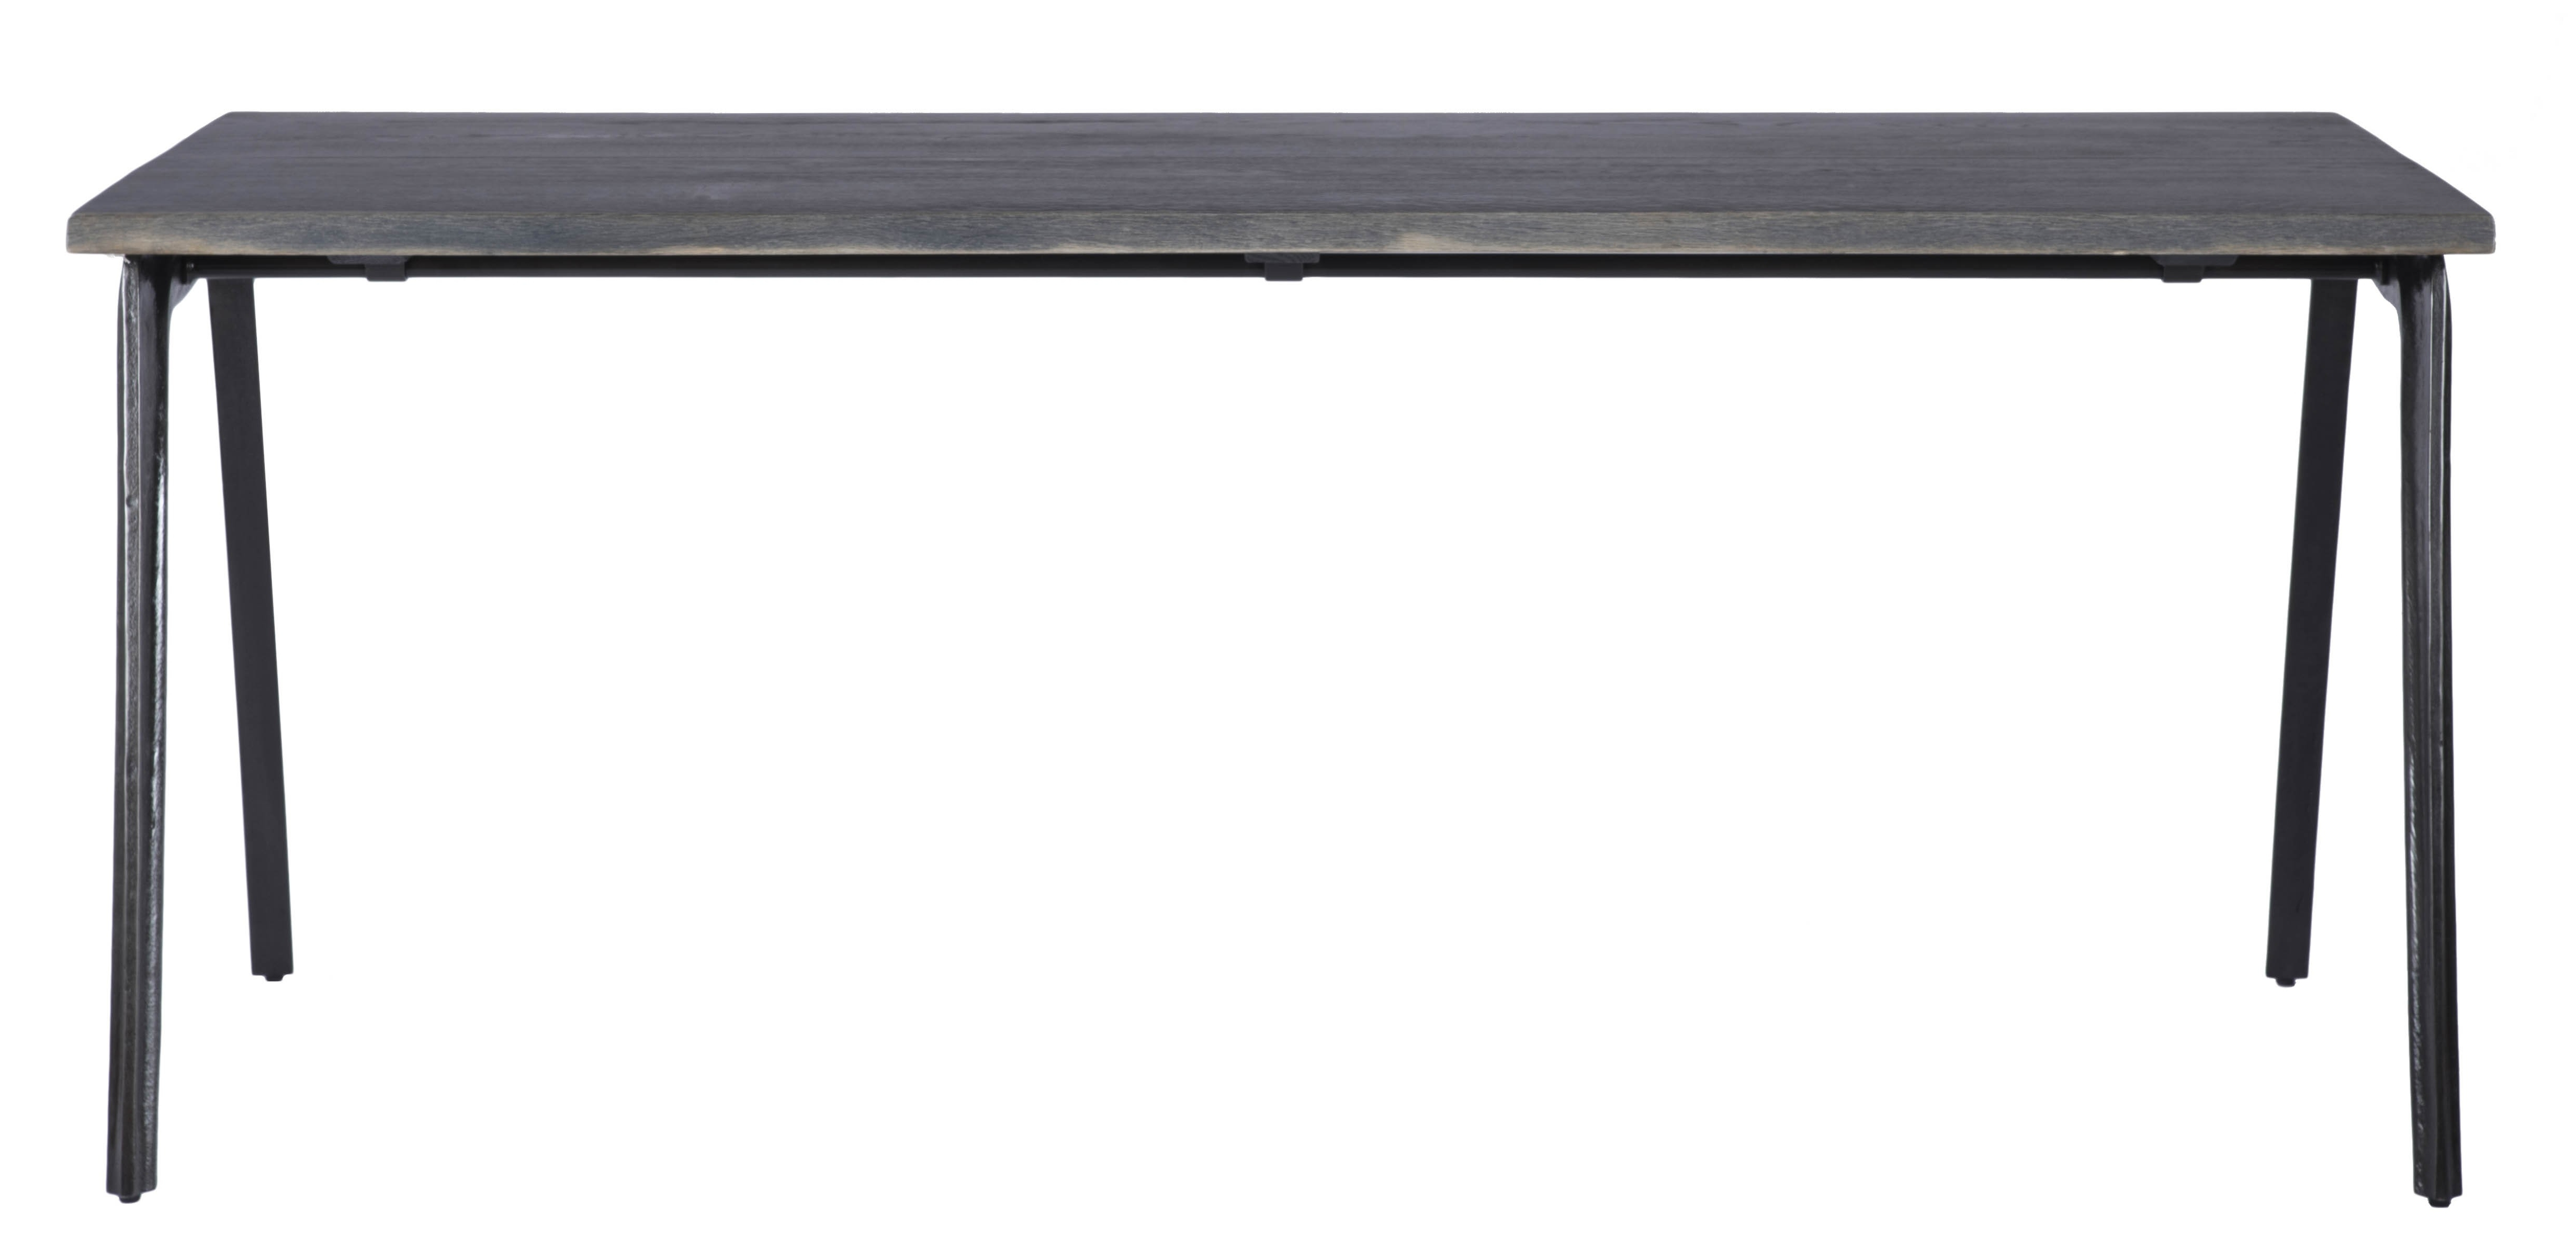 Favorite Toro Dining Table In Ebonized Oak With Regard To Helms Rectangle Dining Tables (View 9 of 25)